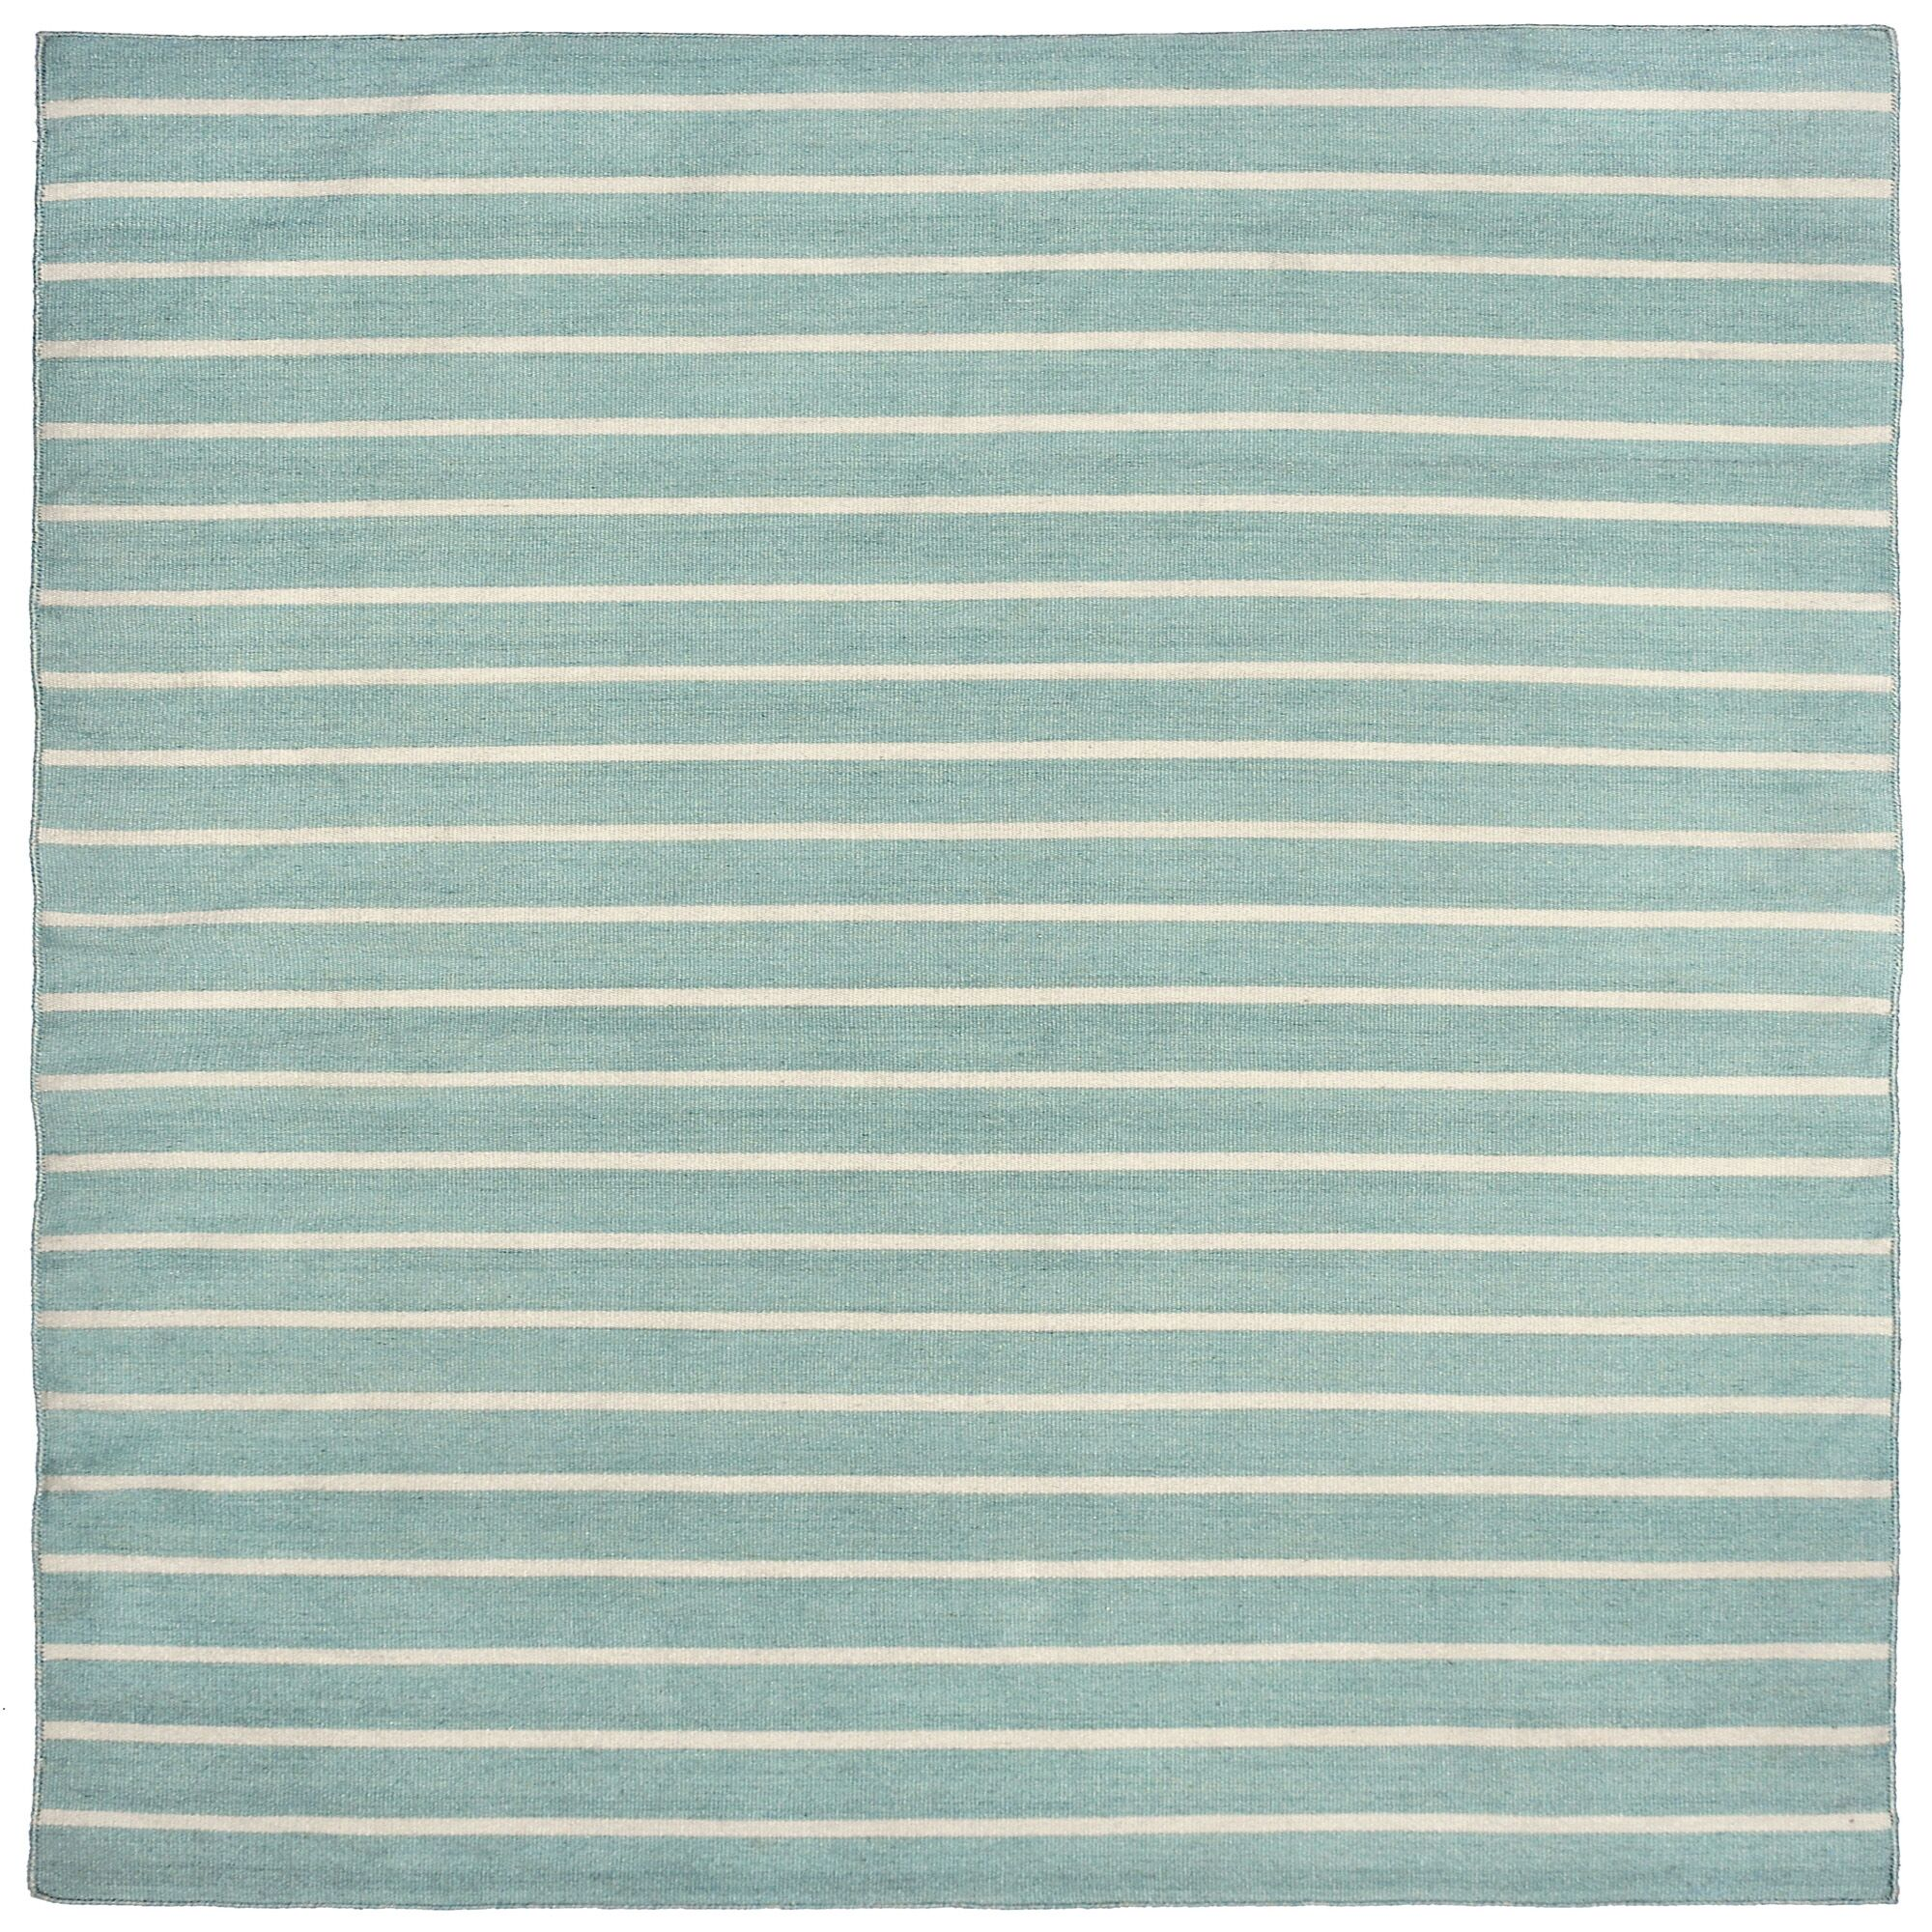 Ranier Pinstripe Hand Woven Blue Indoor/Outdoor Area Rug Rug Size: Square 8'